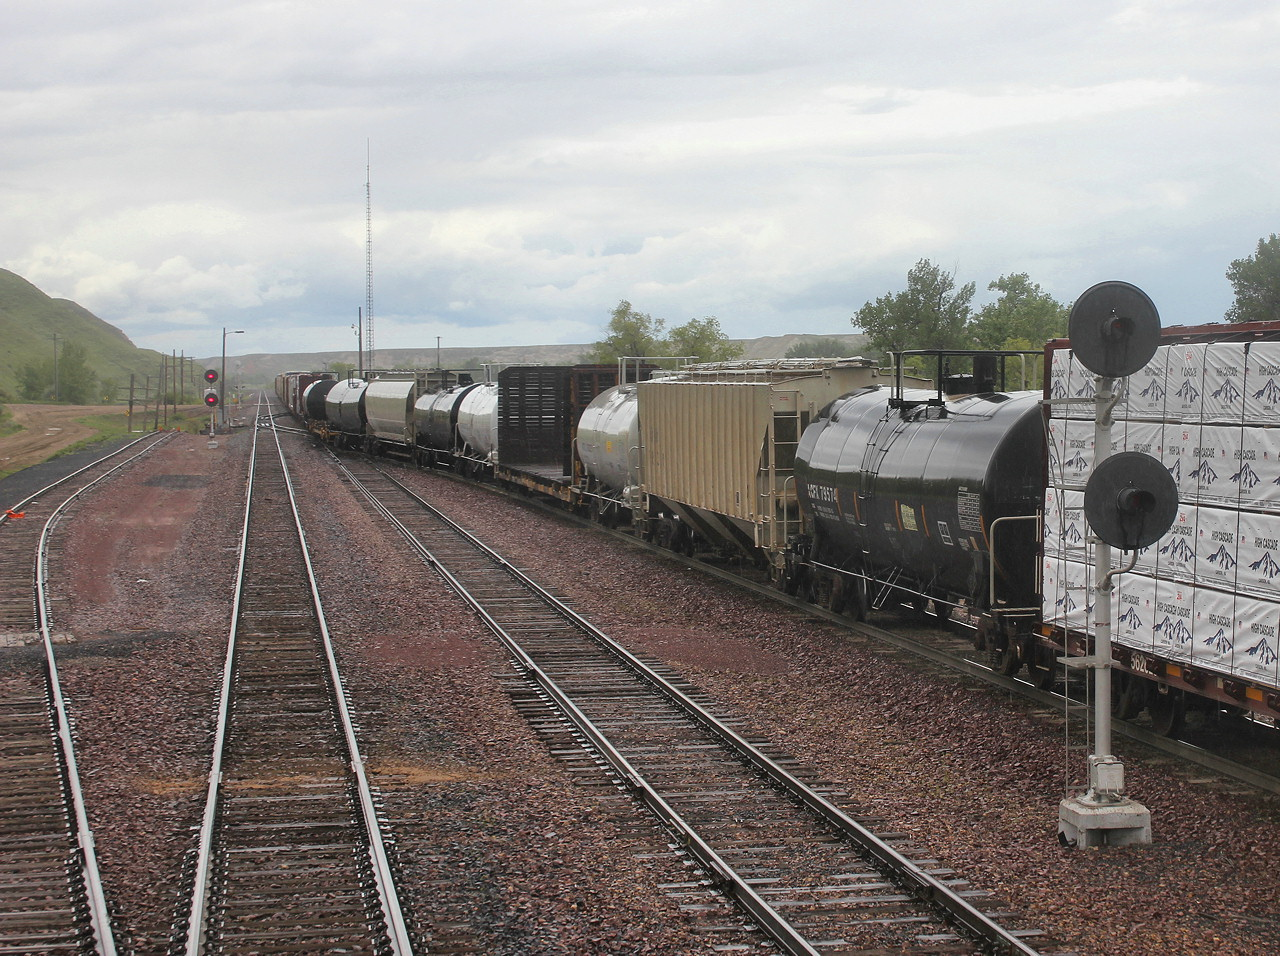 Jersey mikes rail adventures 11 06 17 photos montana flood plains havre is a major railroad town on the hi line sporting both a freight yard and large locomotive servicing facility for the empire builder it is a servicing sciox Choice Image